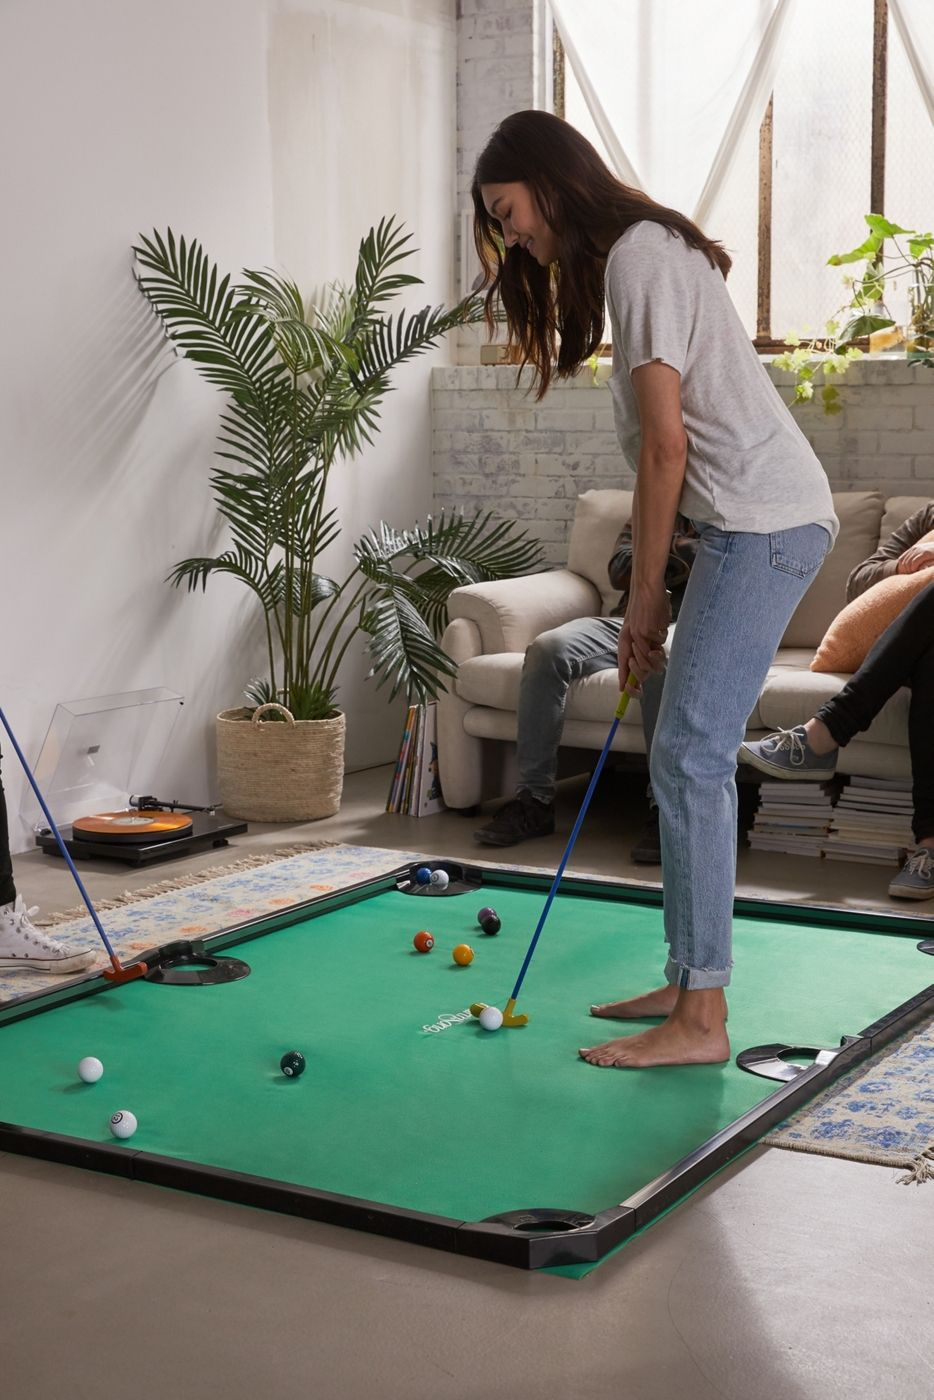 Mini Golf Pool Is Exactly What Your Game Room's Been Missing